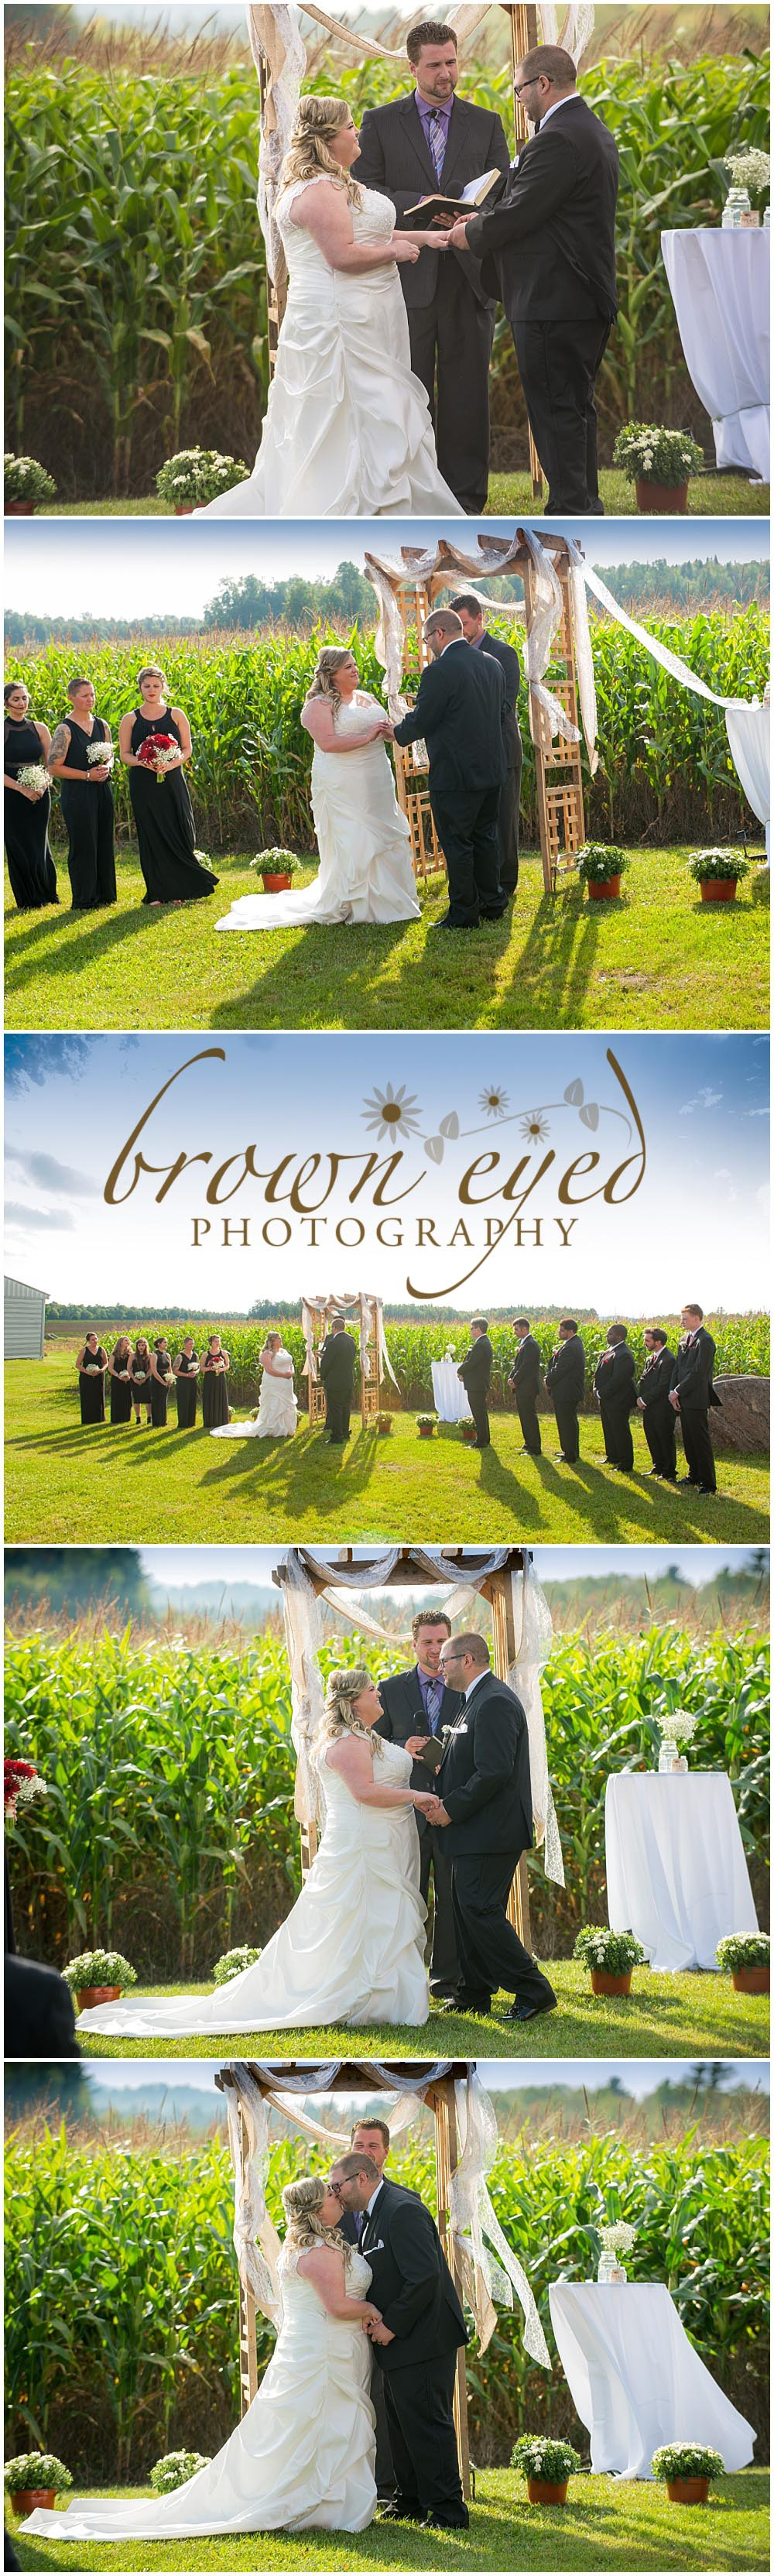 wedding at tucker farms in gabriels ny Adirondacks